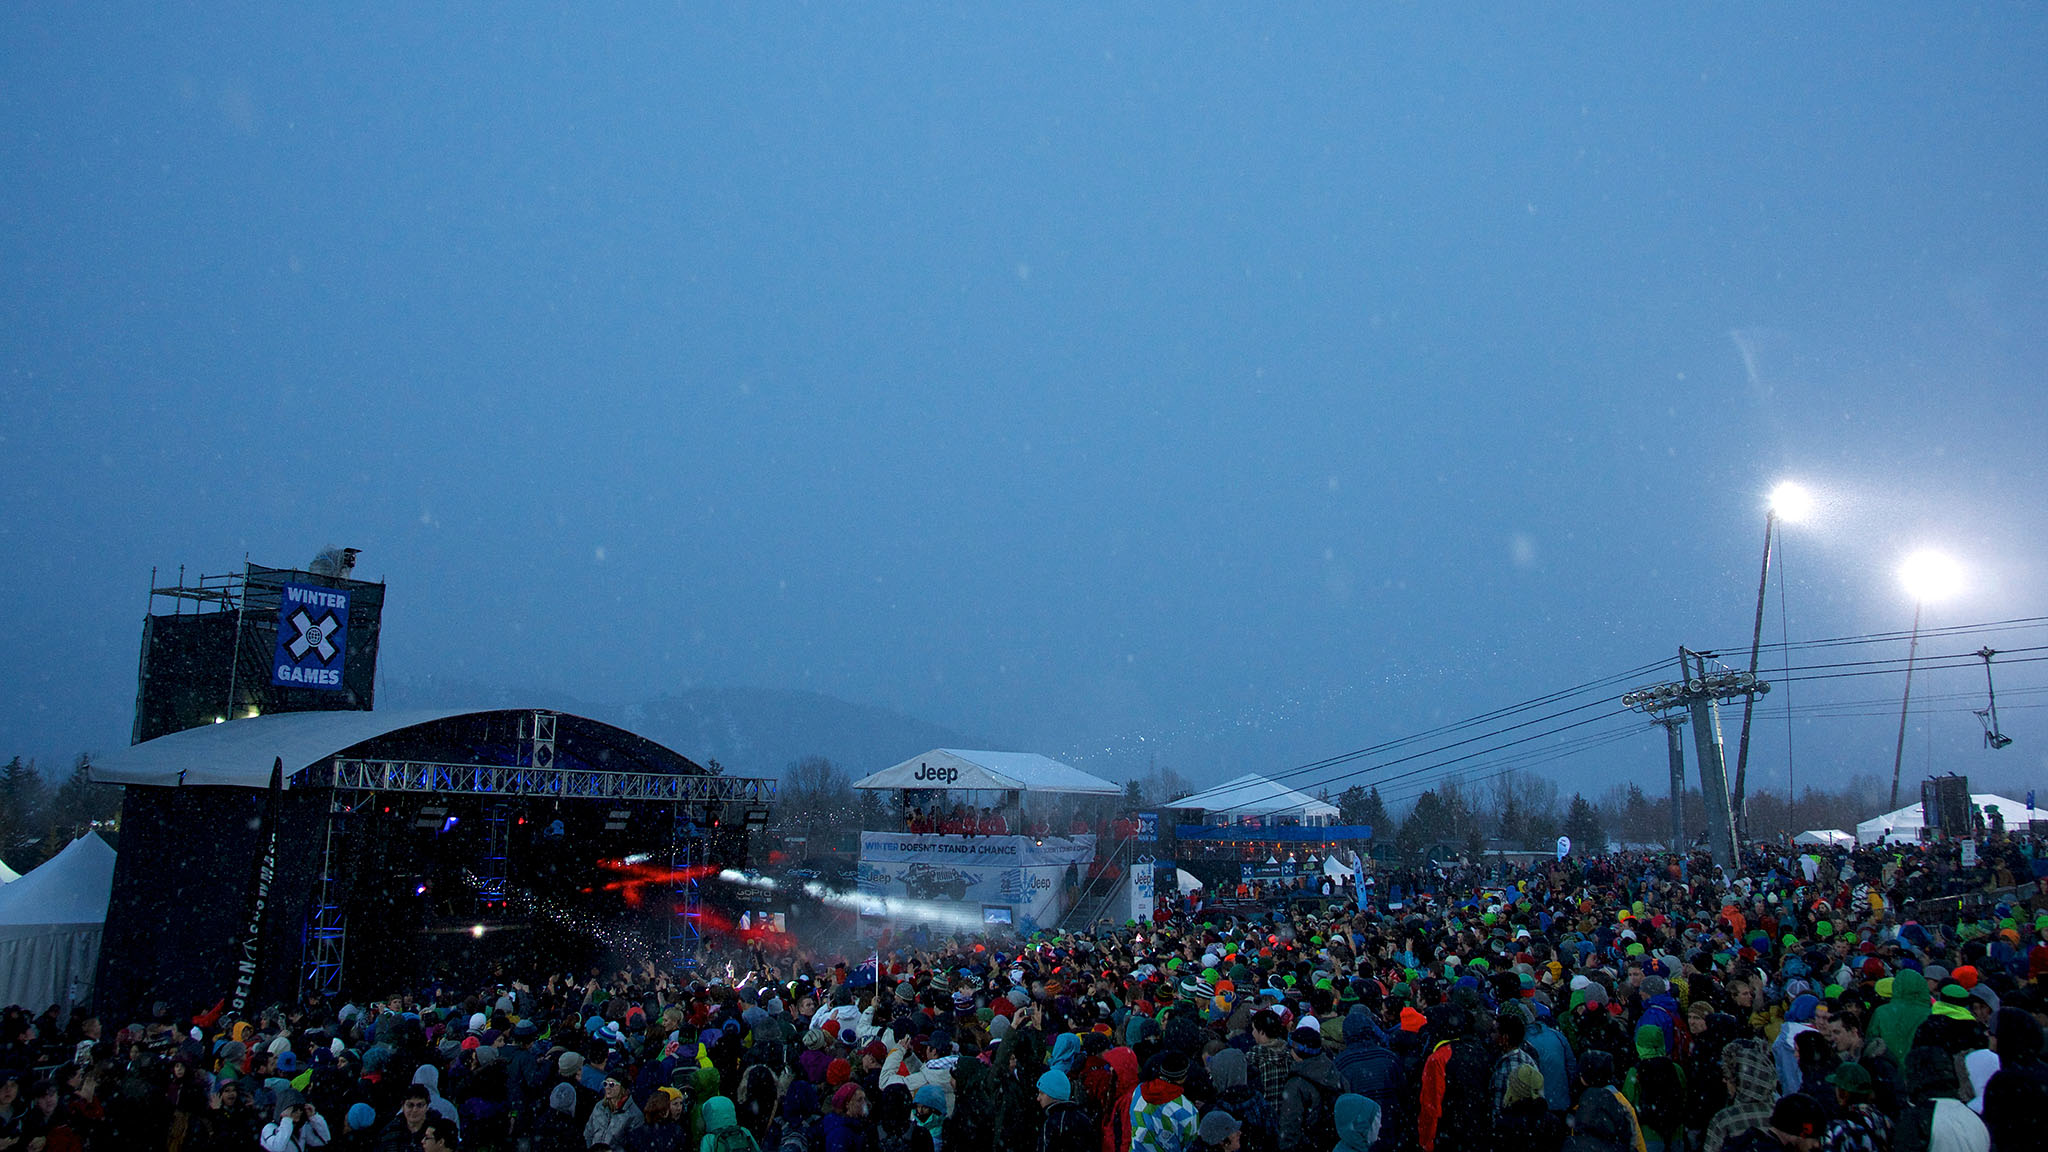 It was cold, and it was snowing, but that didn't stop concert-goers from shaking it in the snow at the Calvin Harris performance at Buttermilk Mountain.